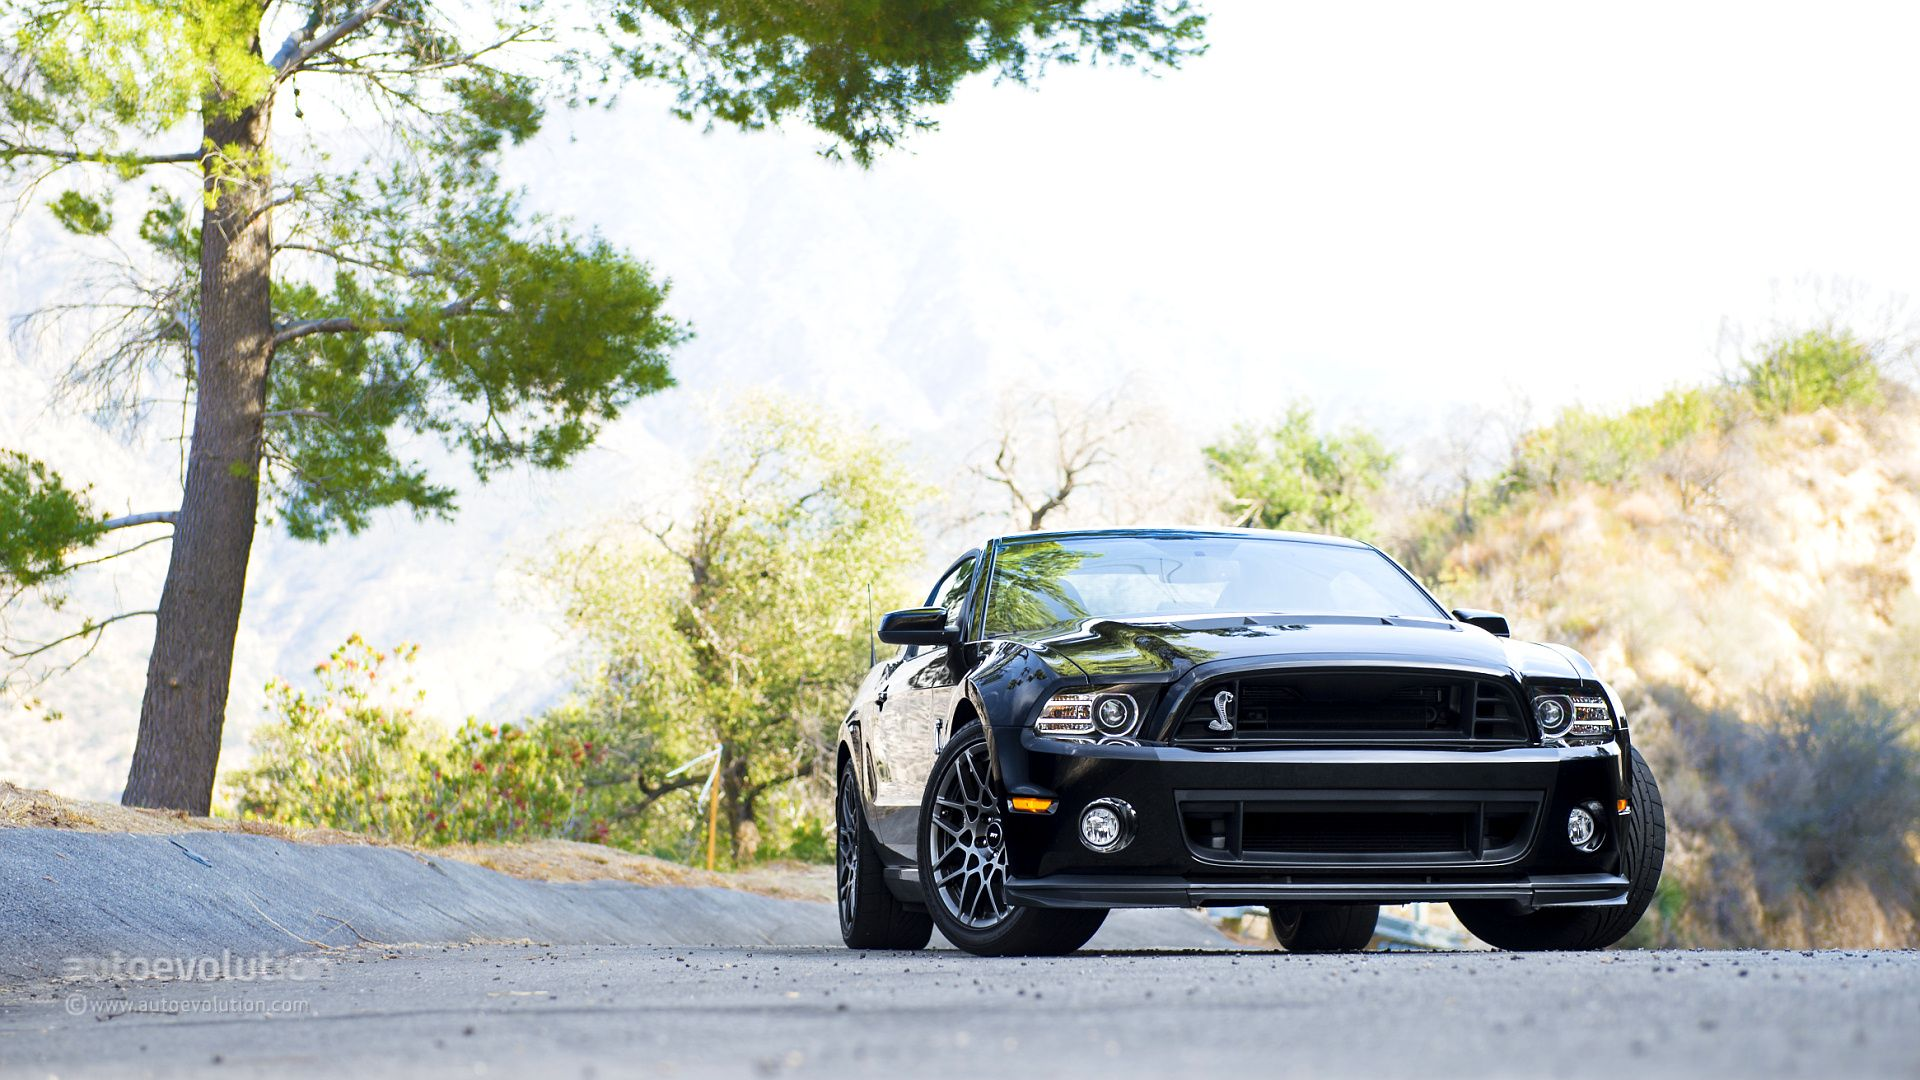 2014 ford mustang shelby gt500 the shelby mustang retains the classic muscle car recipe